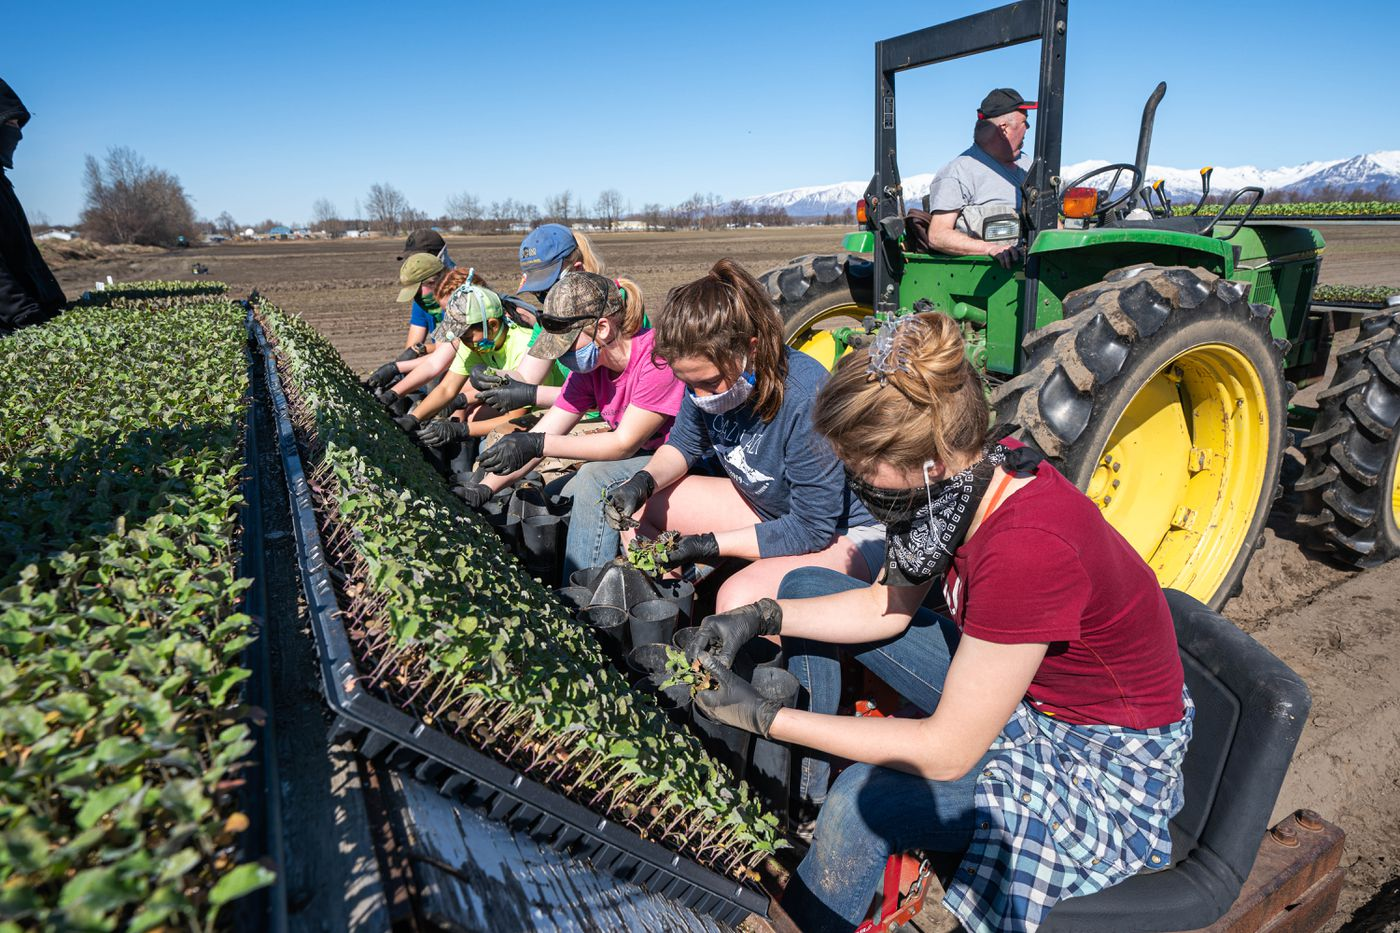 MAY 6. Workers plant 100,000 starts of lettuce, broccoli and cabbage at VanderWeele Farms in Palmer. The first crop of lettuce should be hitting area supermarkets in early July, according to Michelle VanderWeele. (Loren Holmes / ADN)